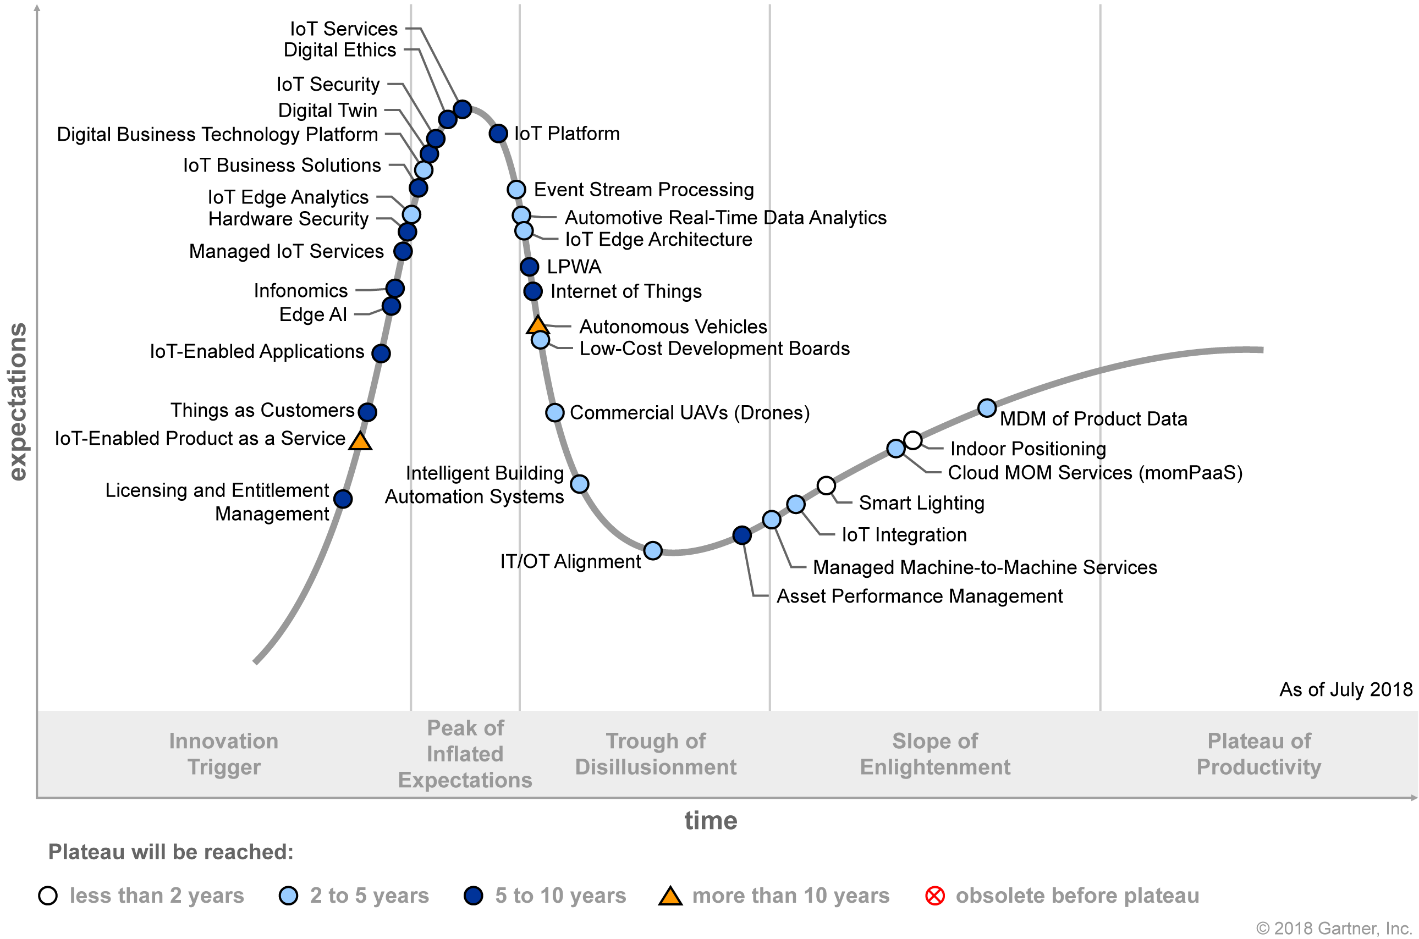 Gartner Hype Cycle for the Internet of Things 2018 (G00340237)